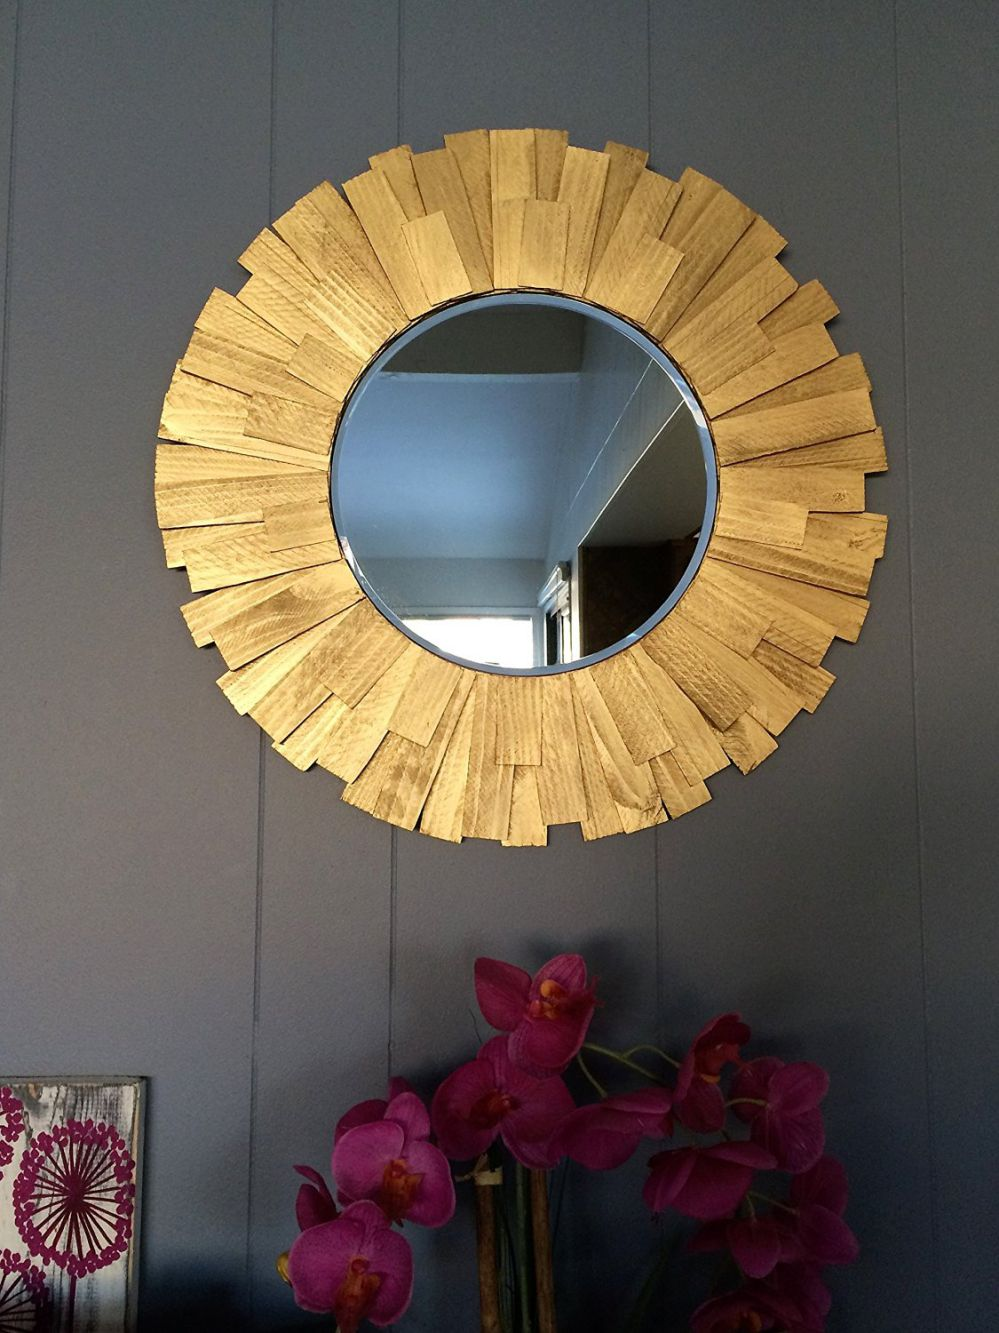 Easy Guide to Put Gold Wall Mirror and the Effects | Decor on The Line